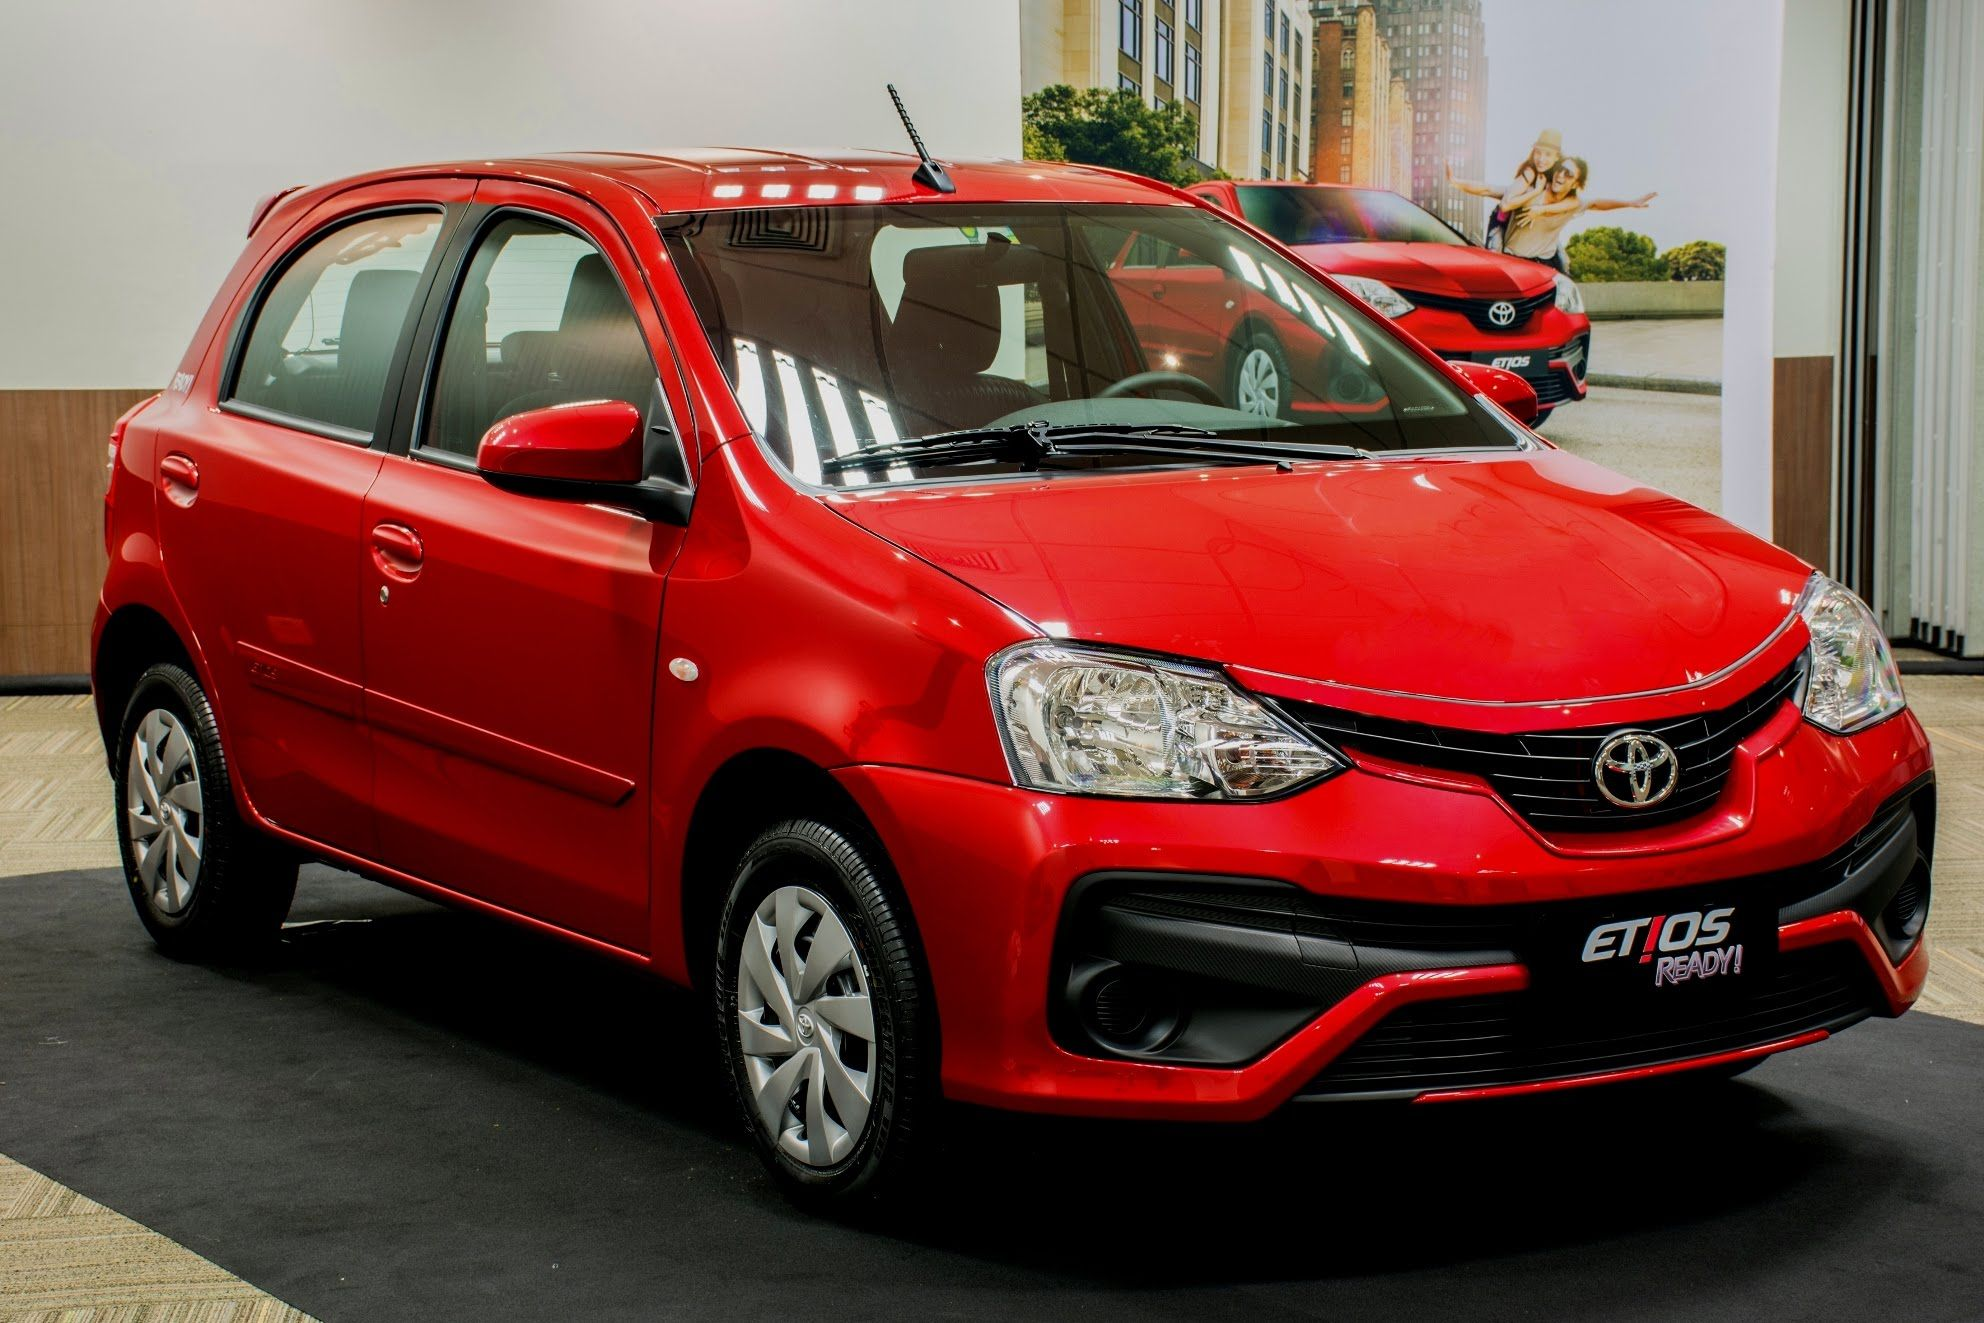 2017 toyota etios ready edition the etios ready integrates the facelift that was previously exclusive to the etios platinum featuring new v shaped grille